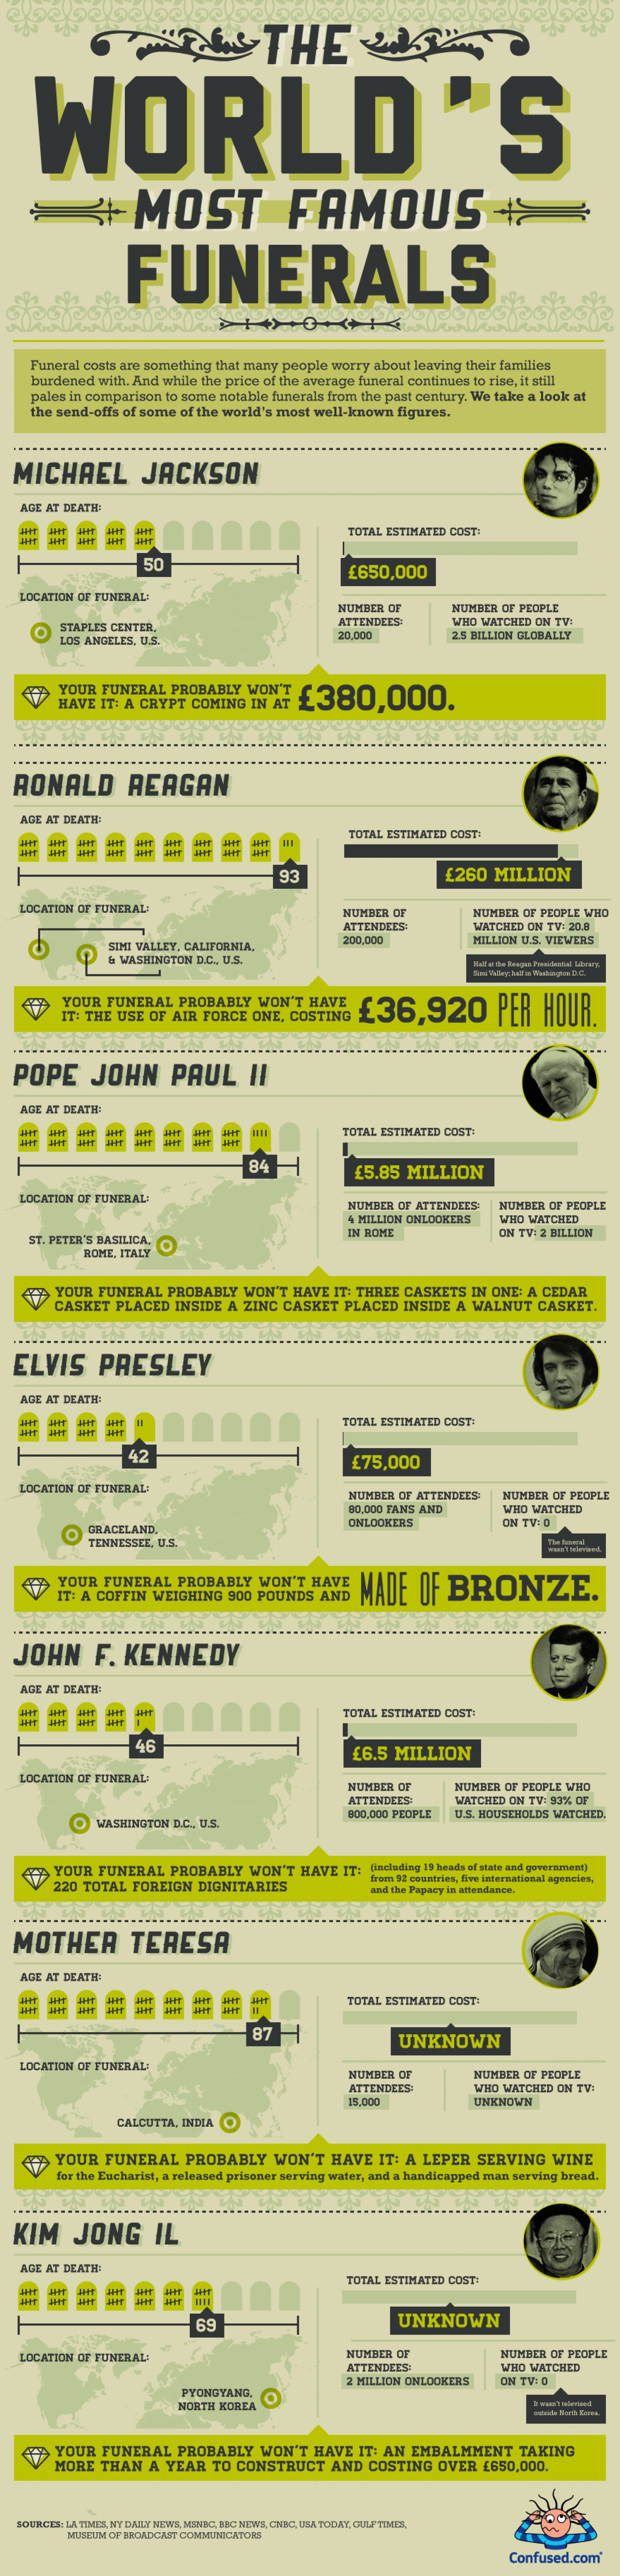 The World's Most Famous Funerals Infographic